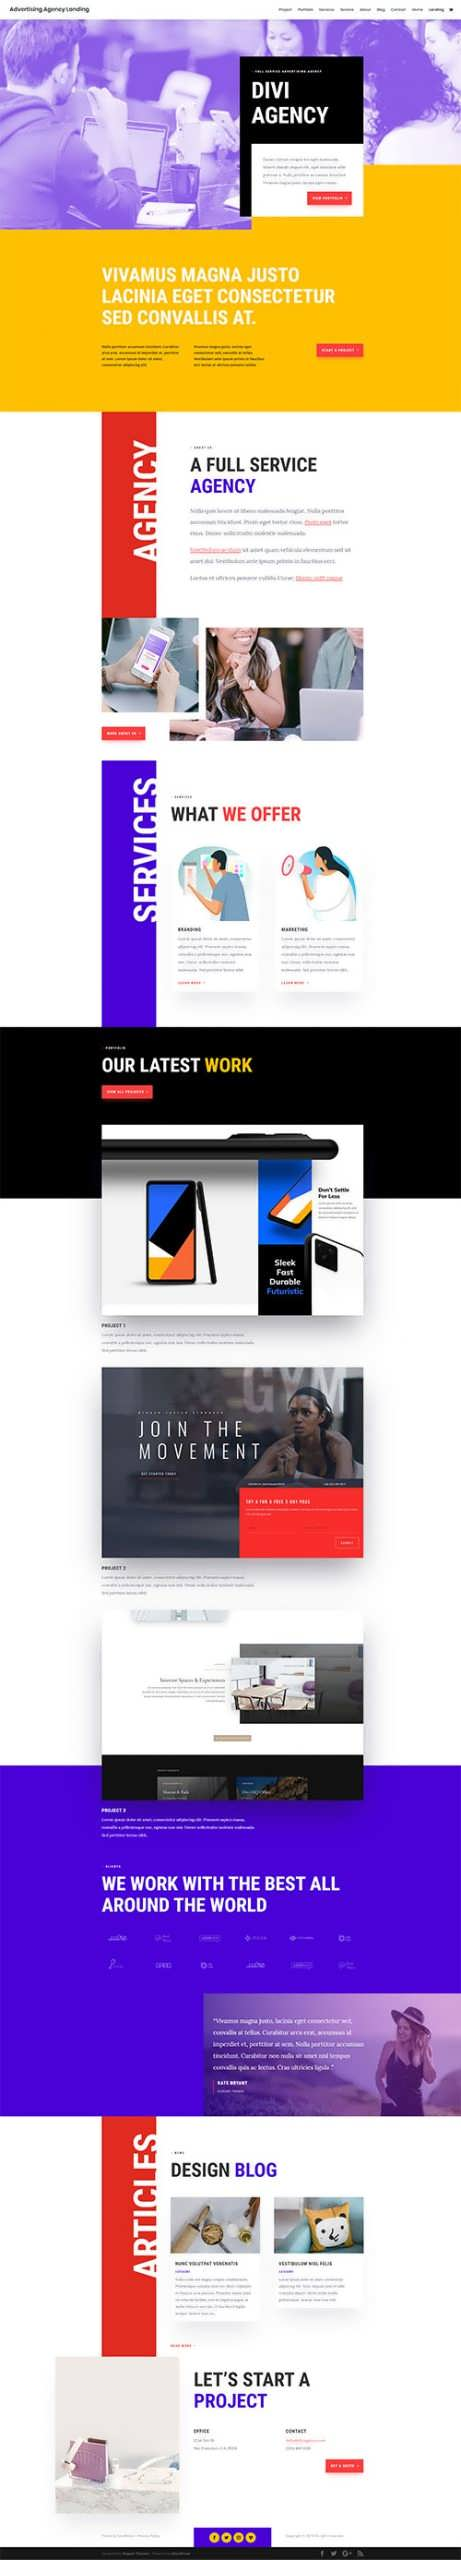 Ads Agency Landing Page scaled